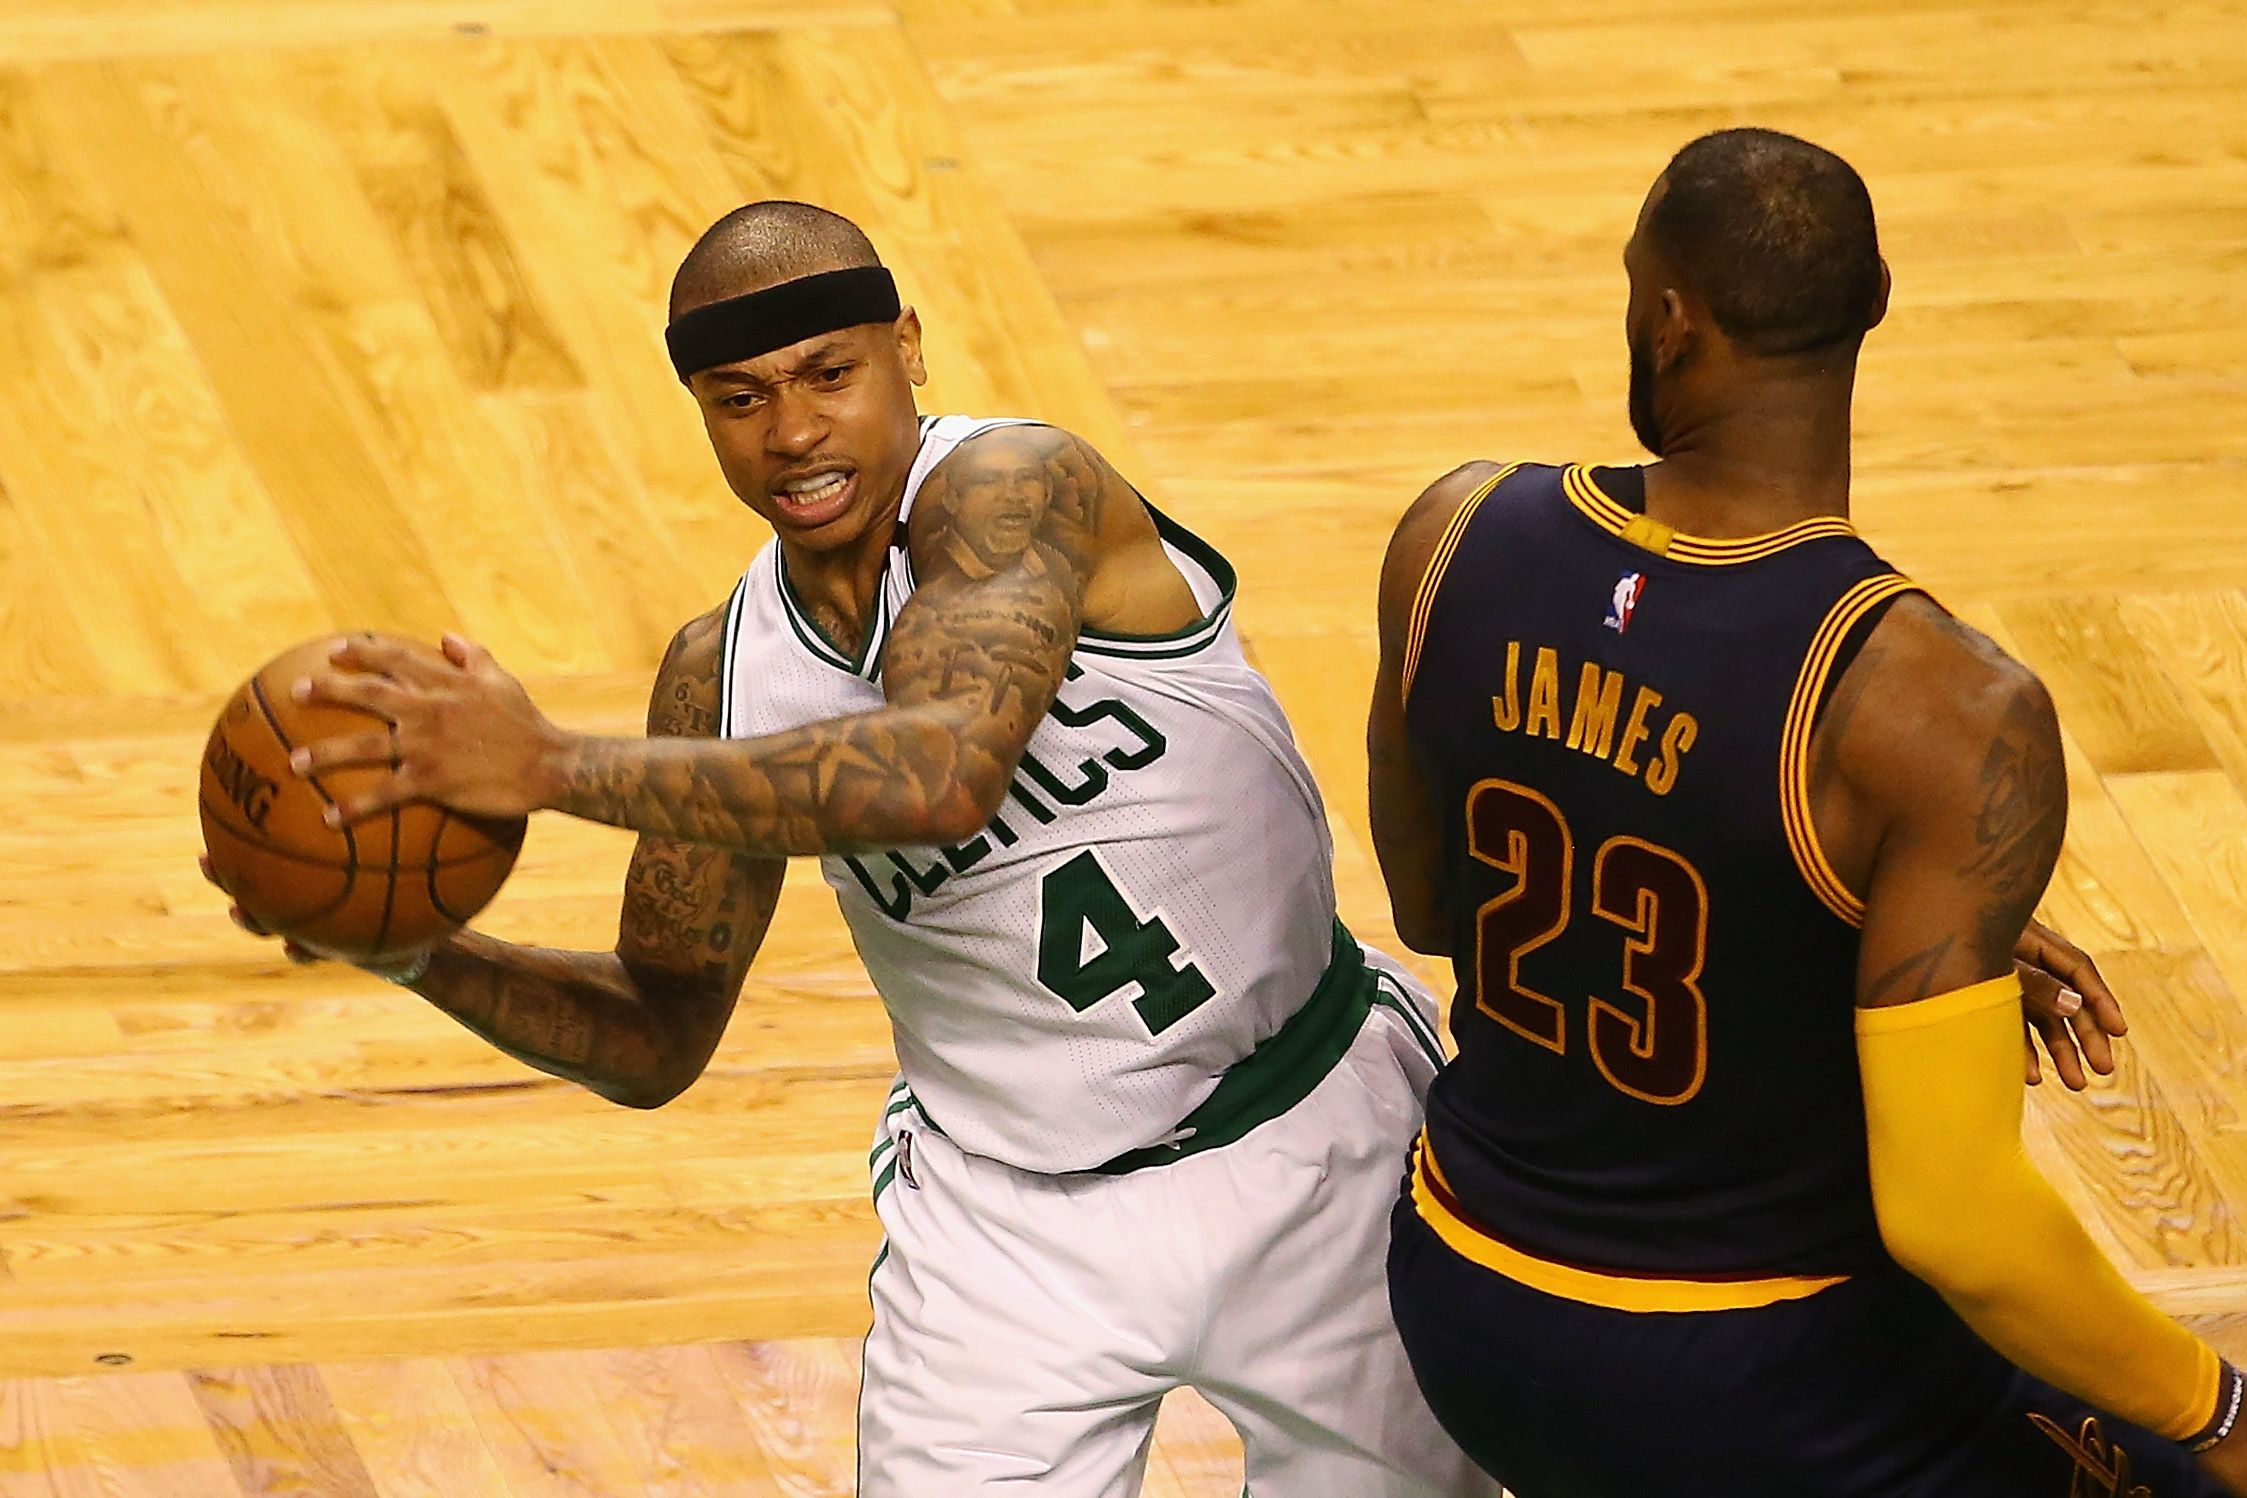 Isaiah Thomas, formerly of the Boston Celtics, with new Cleveland Cavaliers teammate LeBron James.